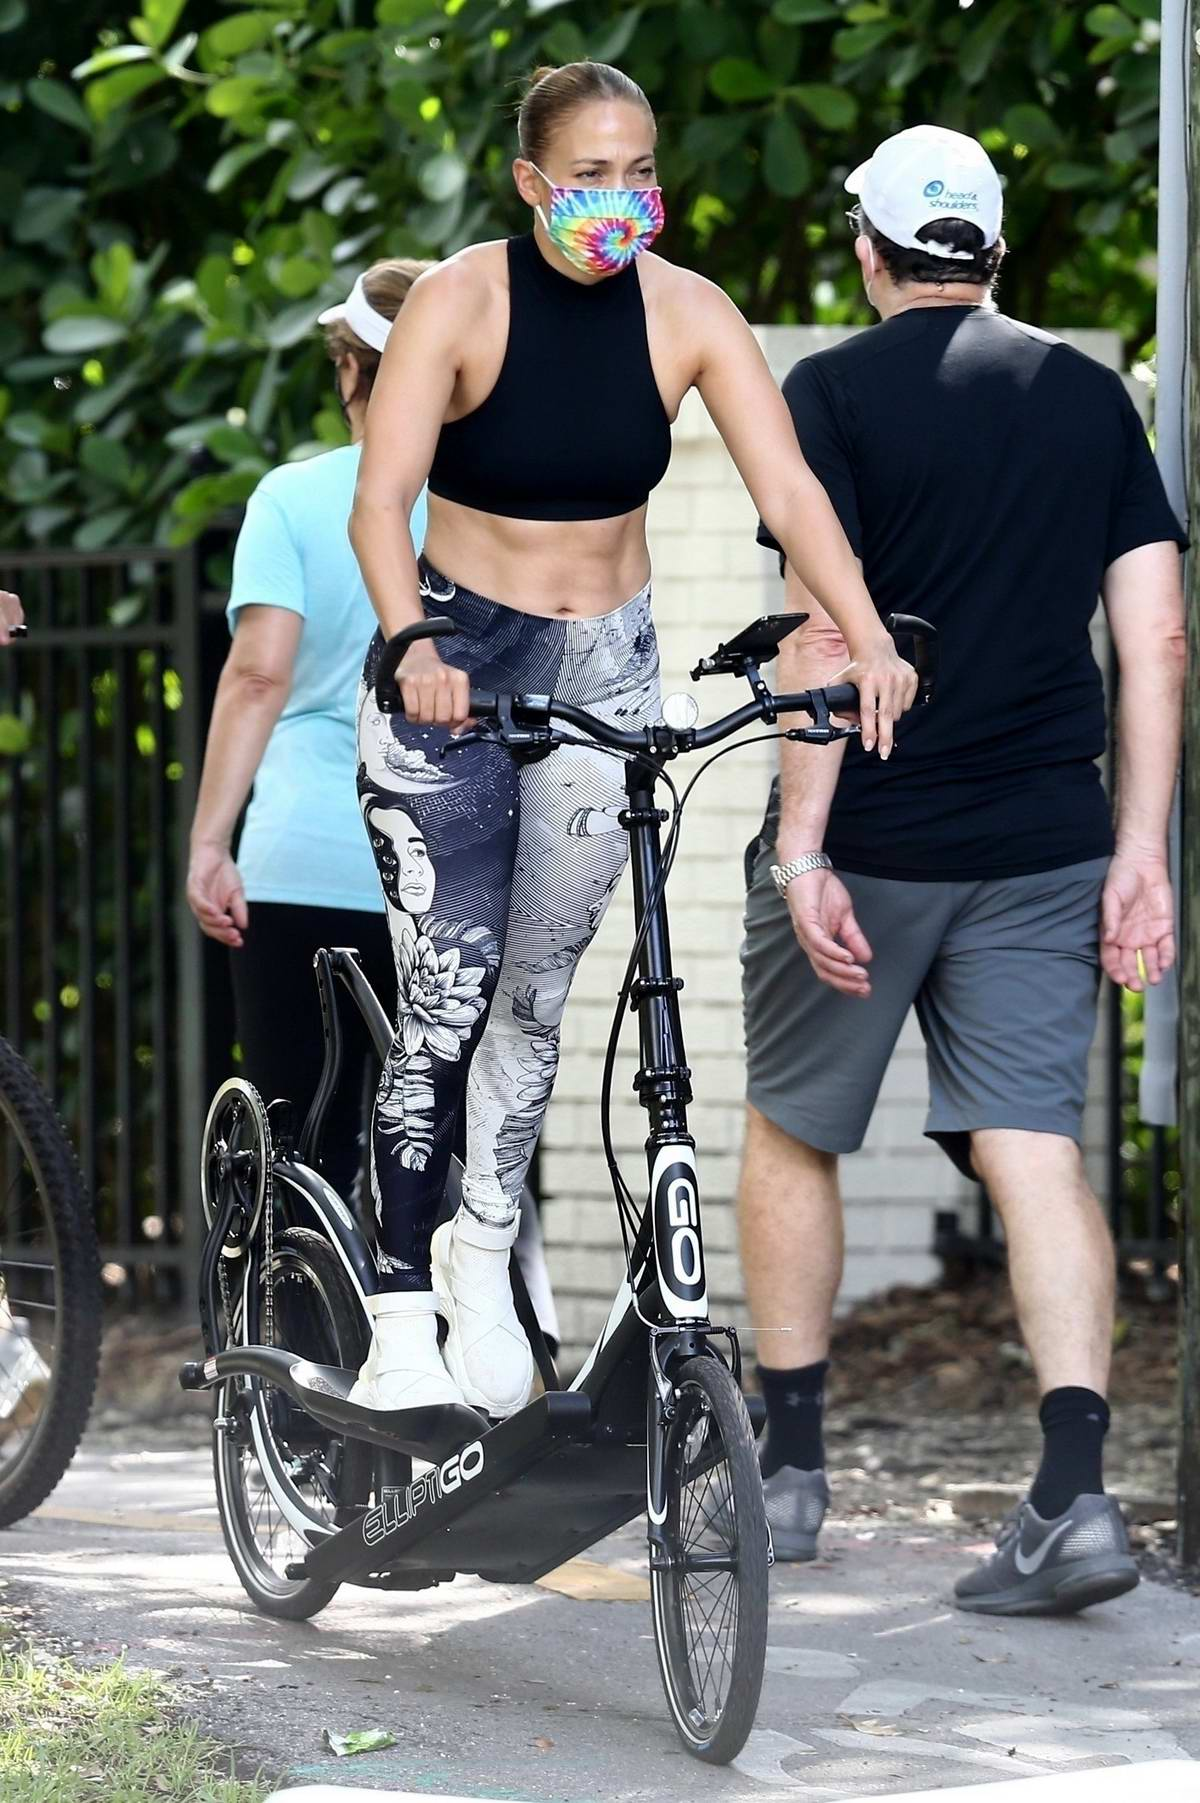 Jennifer Lopez wears a black crop top and printed leggings as she gets in a workout on her ElliptiGo bike in Miami, Florida